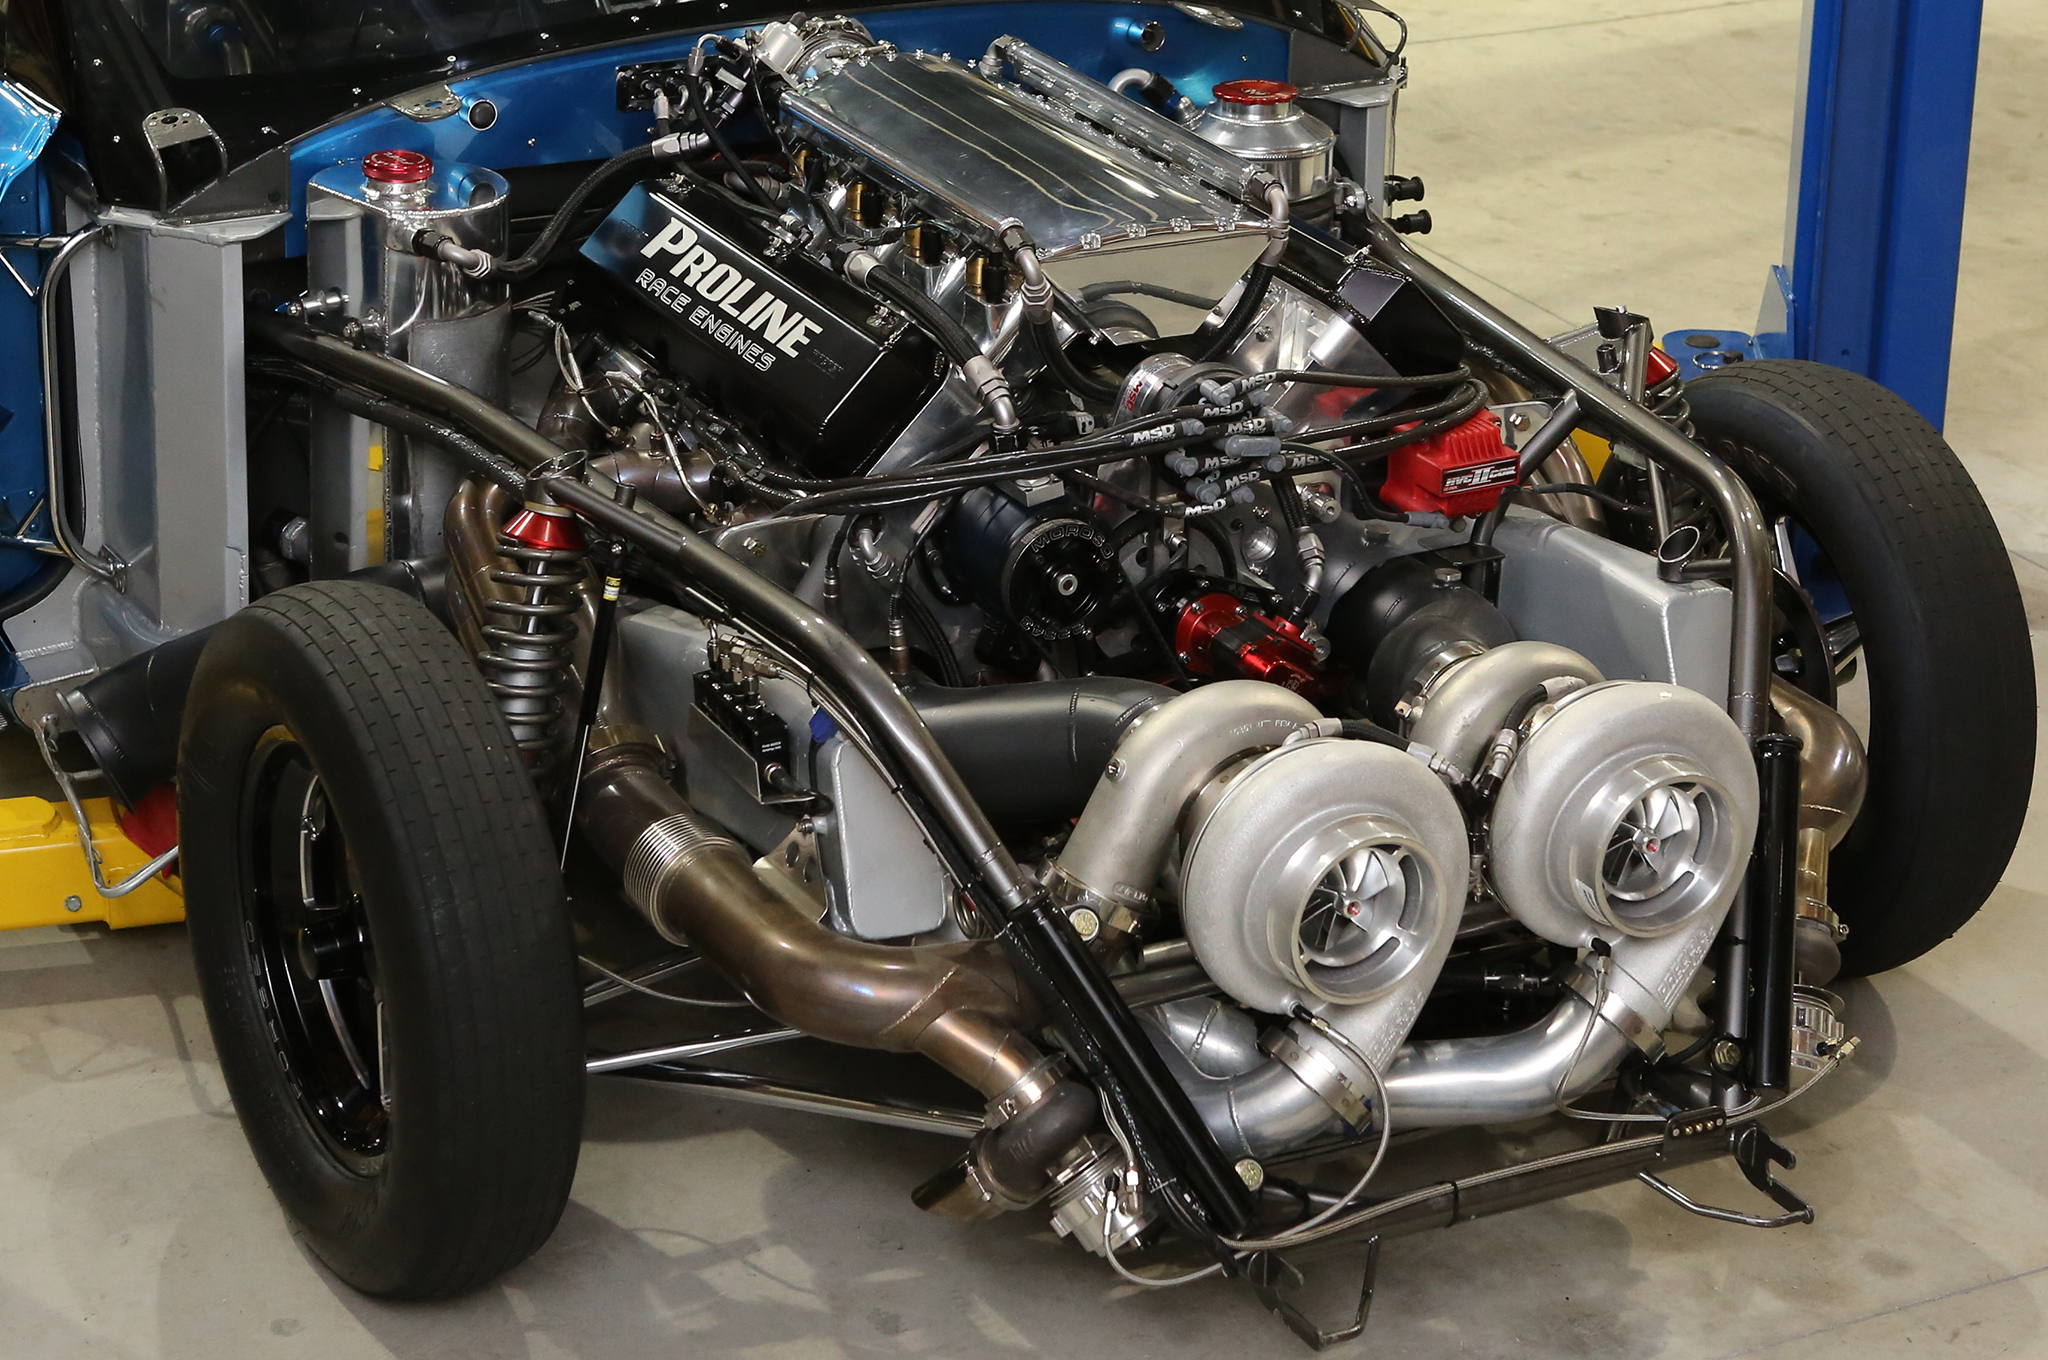 Rodney Massengale's 4,000HP, 676CI, Twin-Turbo Pro Line Racing Big